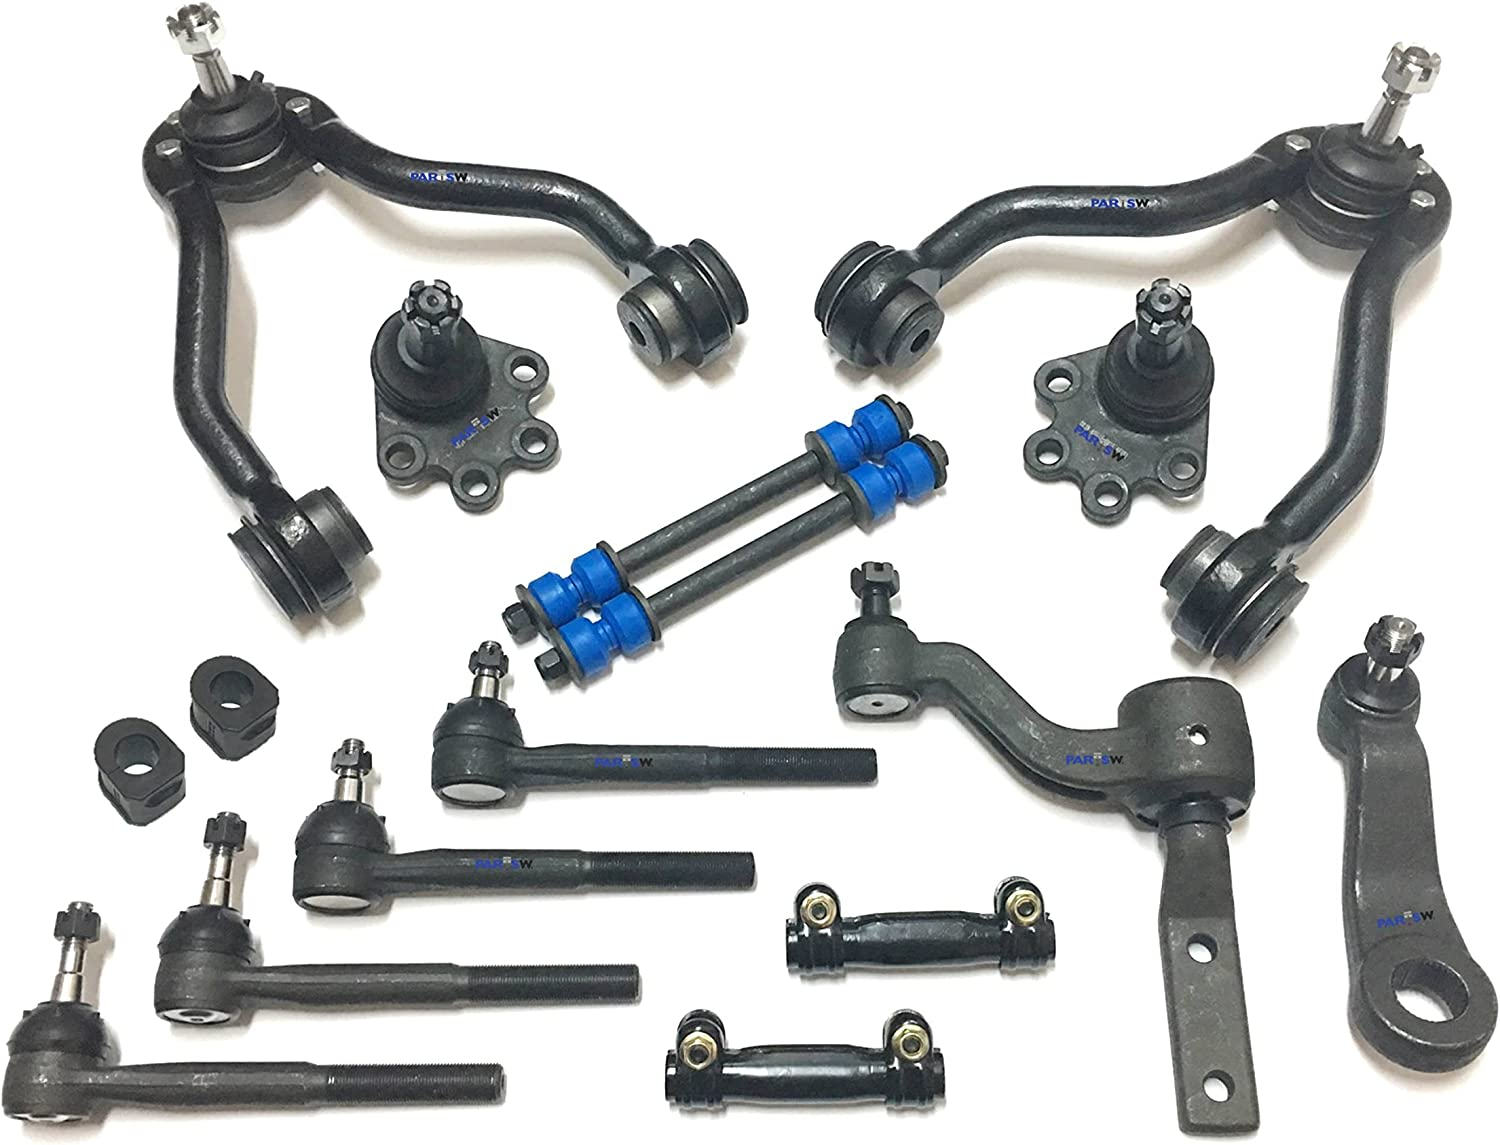 2 Lower Ball Joints 14 Piece Front Suspension Kit Detroit Axle 2 Sway Bar End Links 2 Adjustment Sleeves 2 Upper Ball Joints Pitman /& Idler Arms Tie Rod Ends Fits 4x4 Models Only